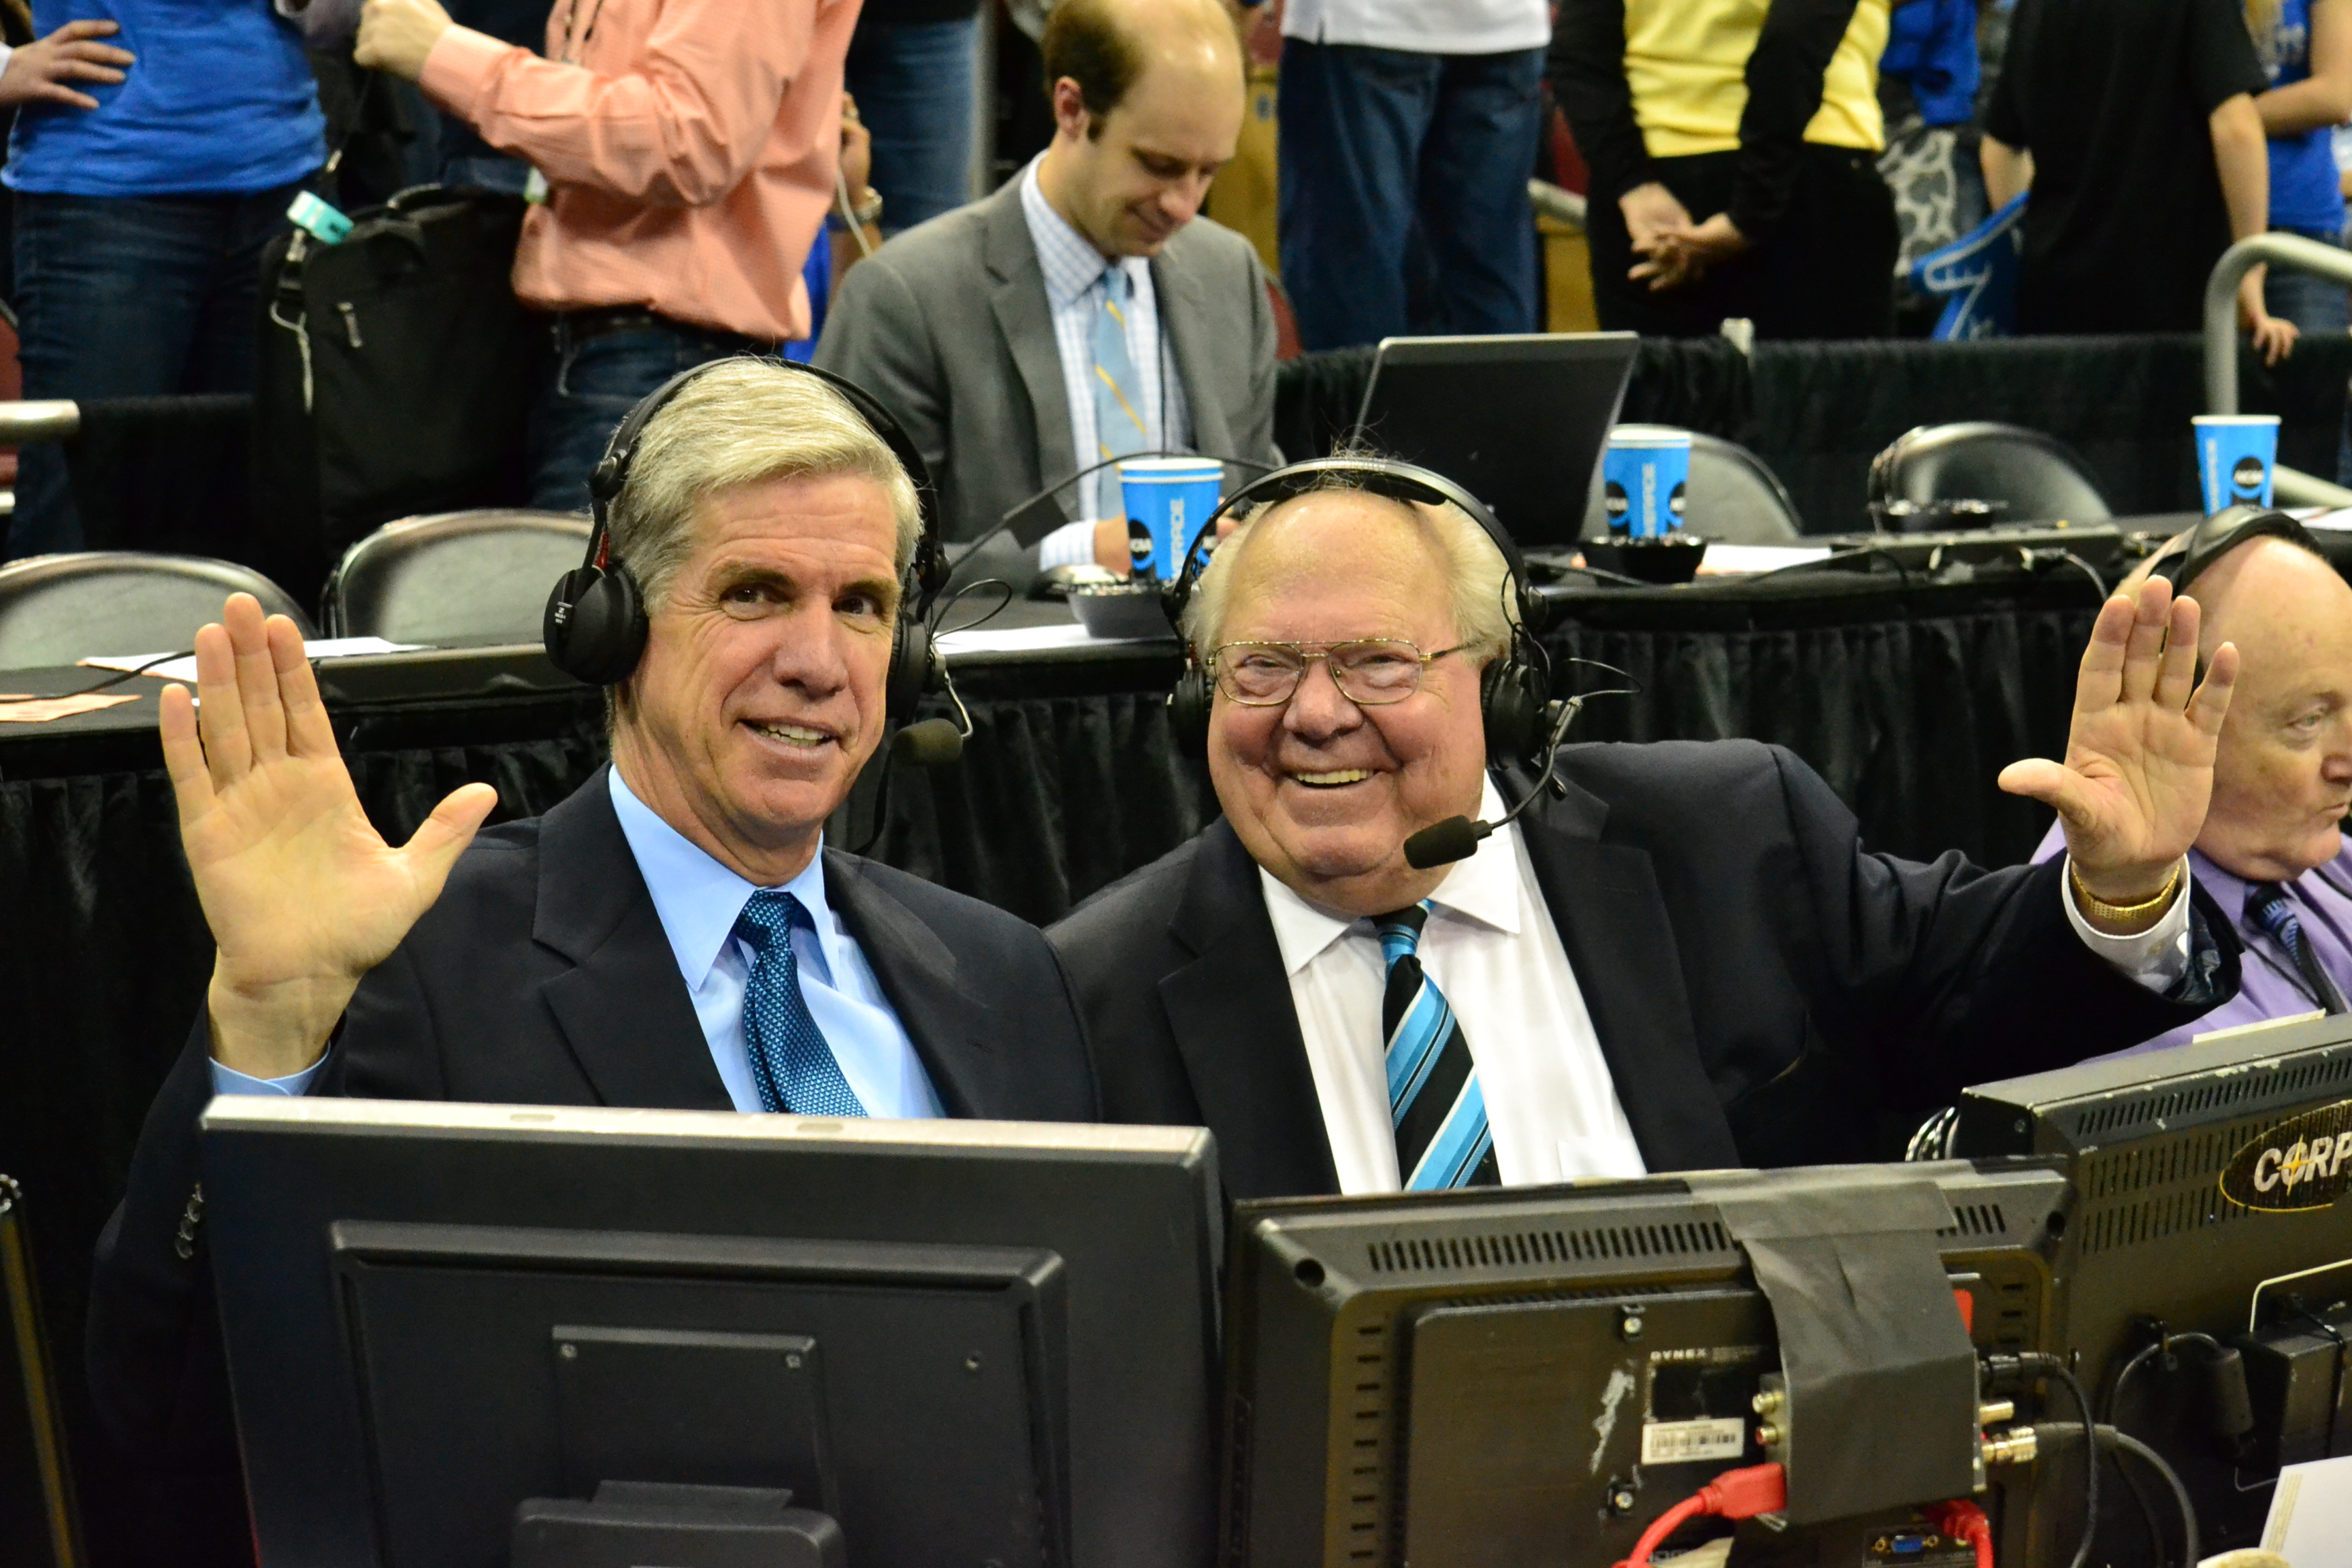 Jim Spanarkel, left, is teamed with Verne Lundquist for the Buffalo NCAA games airing on CBS Sports and Turner Sports stations this week. (Photo courtesy of Jamie H. Vaught/KySportsStyle.com Magazine)